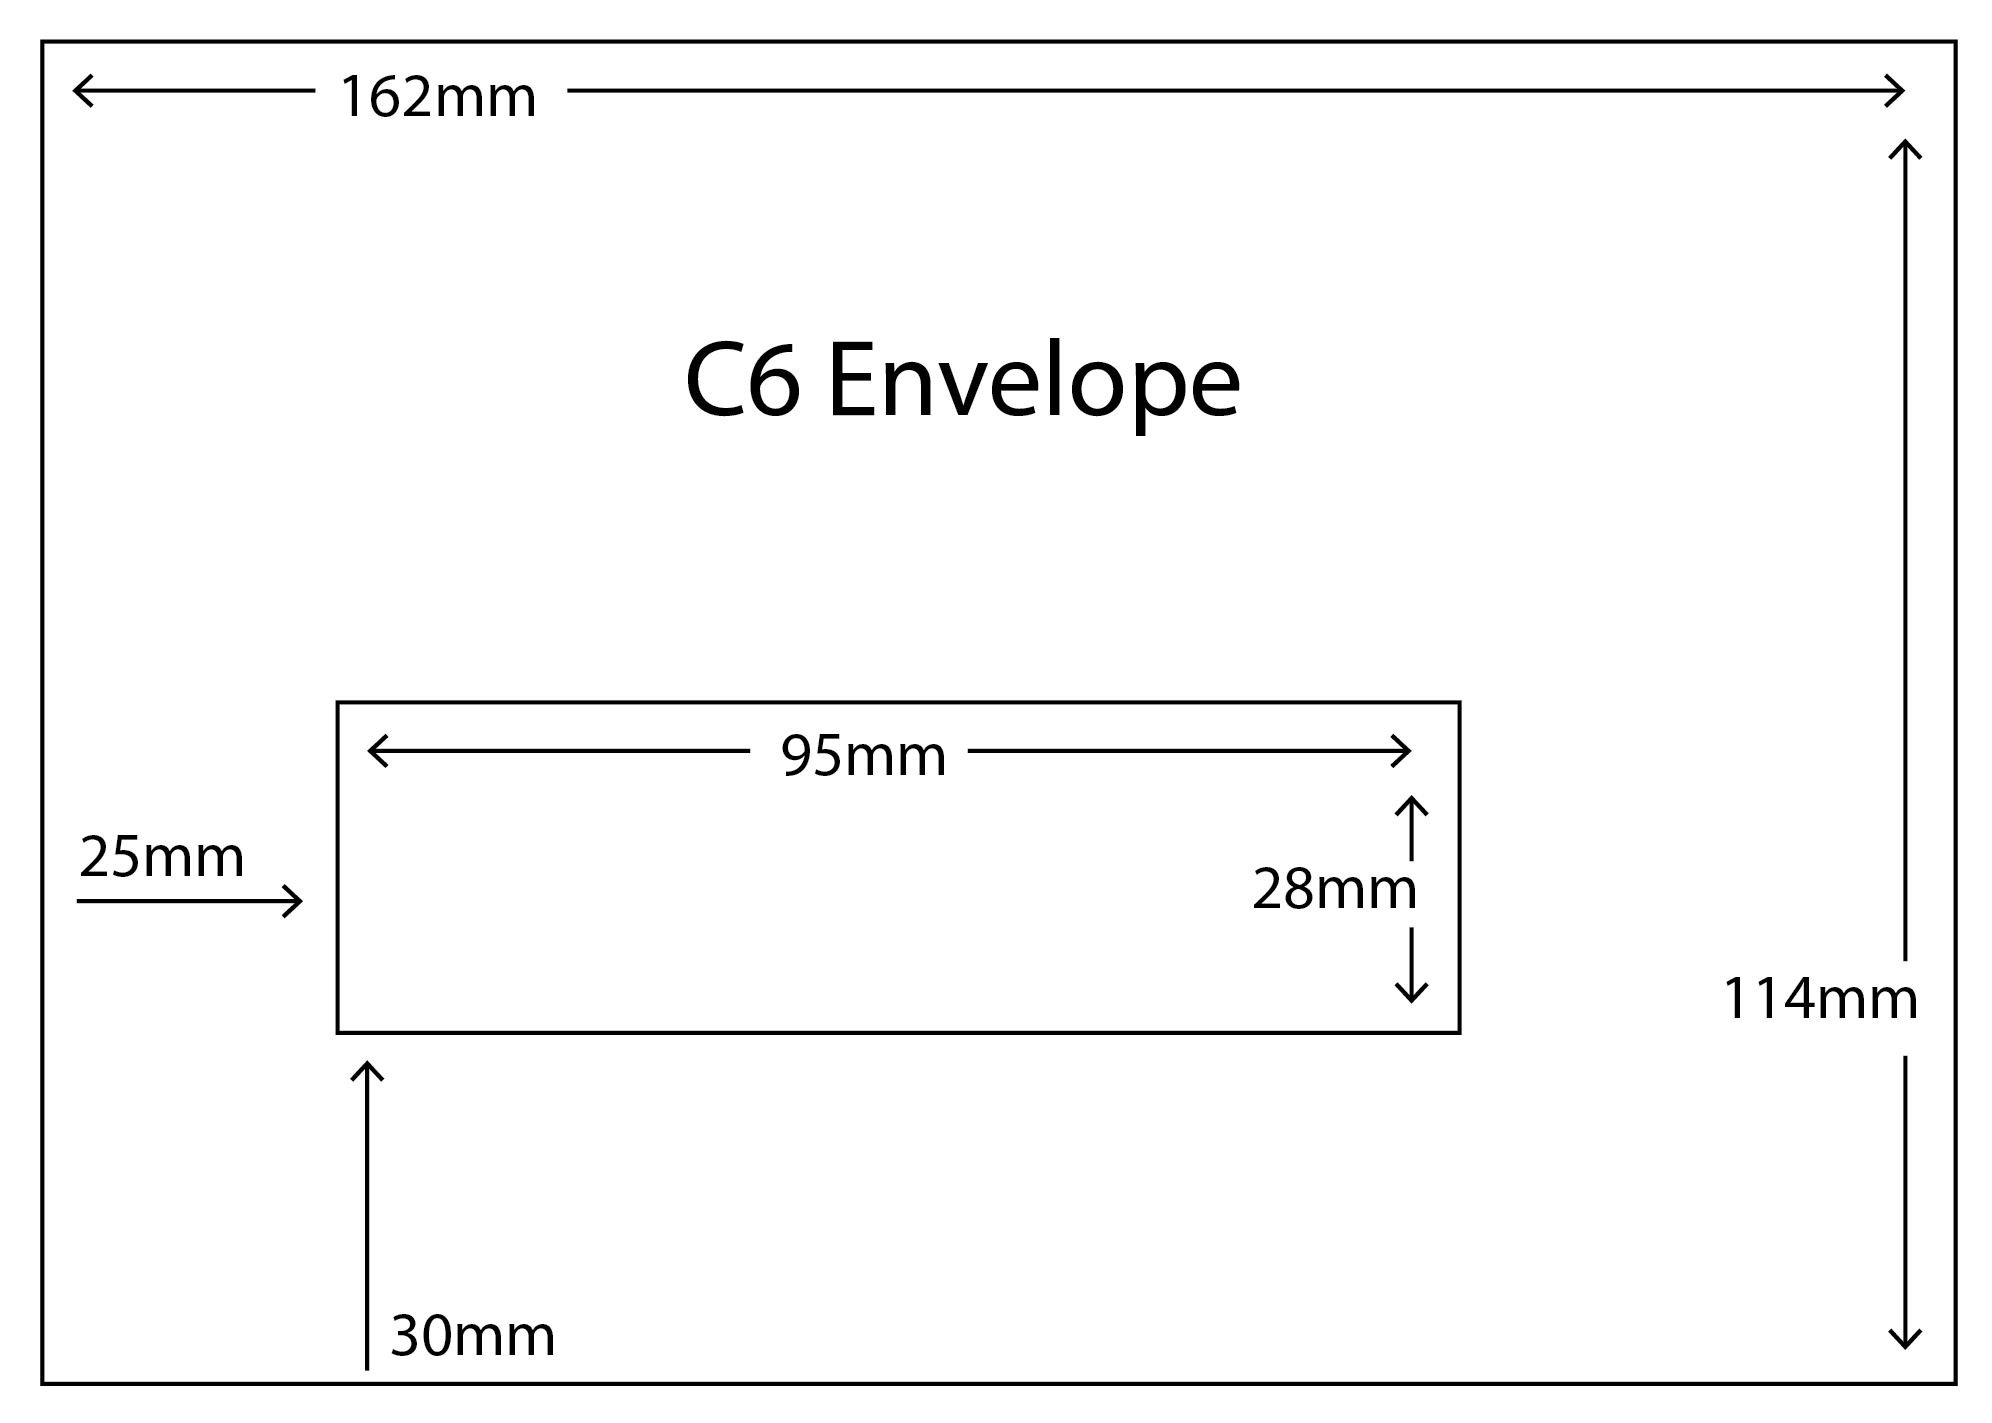 C6 Envelope with standard window size